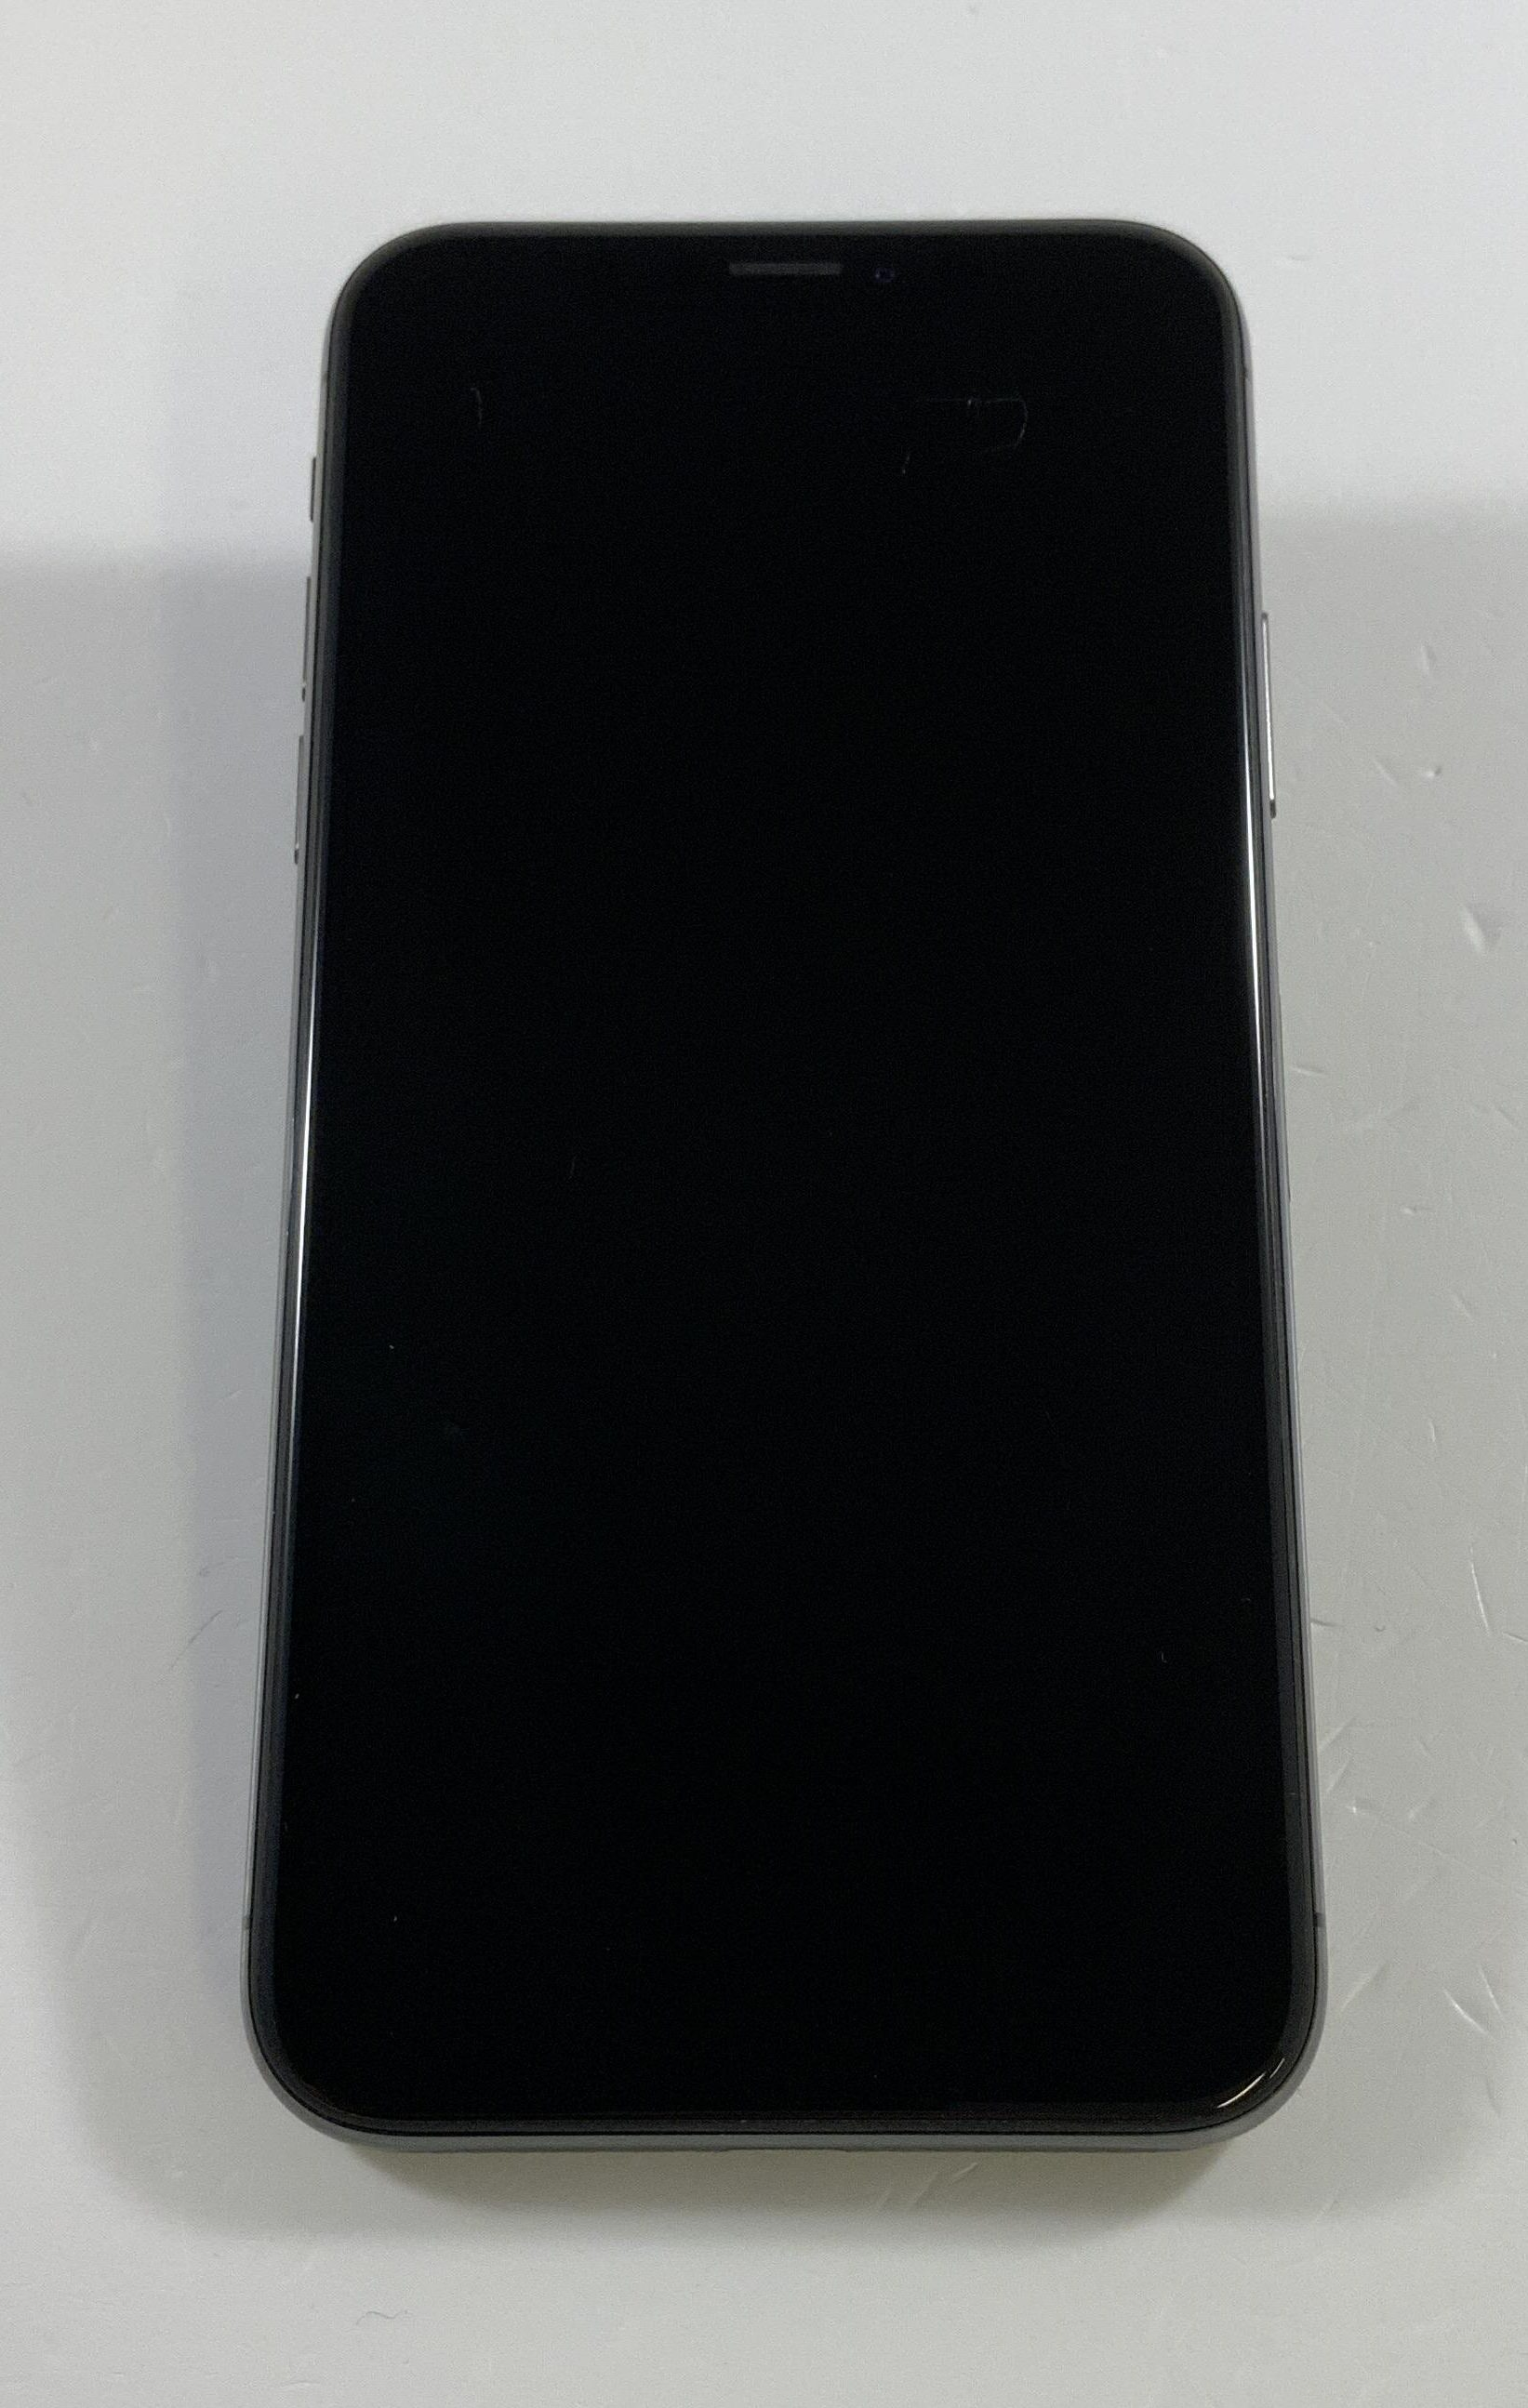 iPhone X 64GB, 64GB, Space Gray, immagine 1